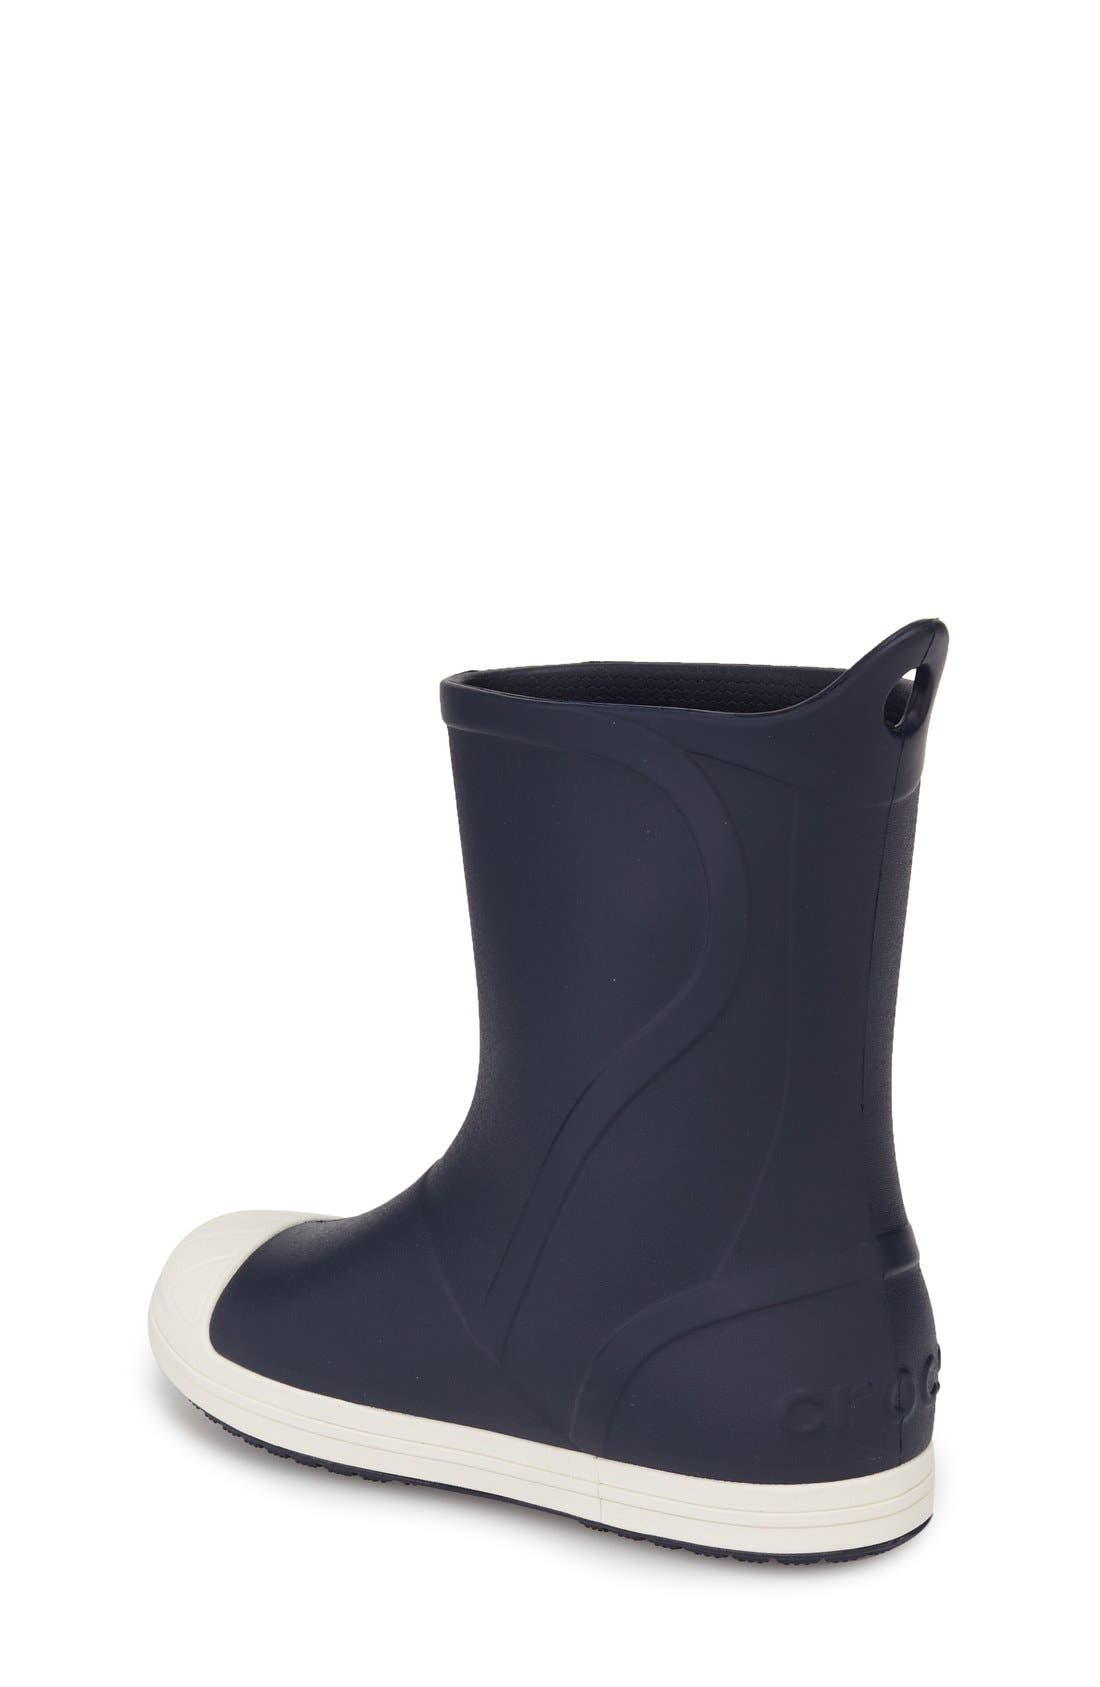 Bump It Waterproof Rain Boot,                             Alternate thumbnail 2, color,                             438